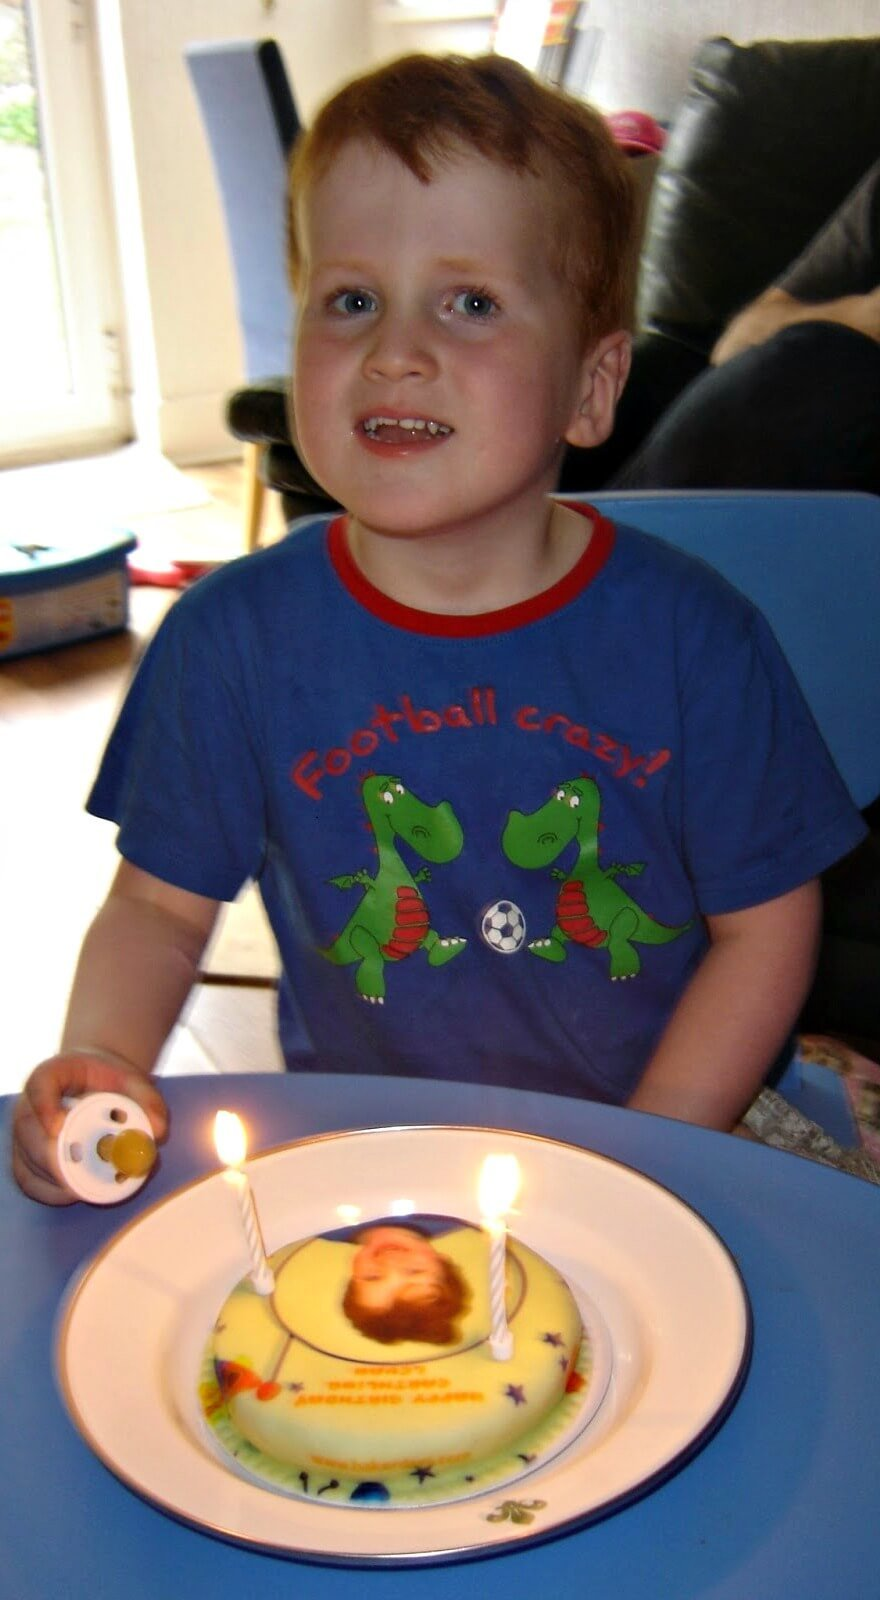 Baker Days letterbox cakes - Ieuan enjoying his cake